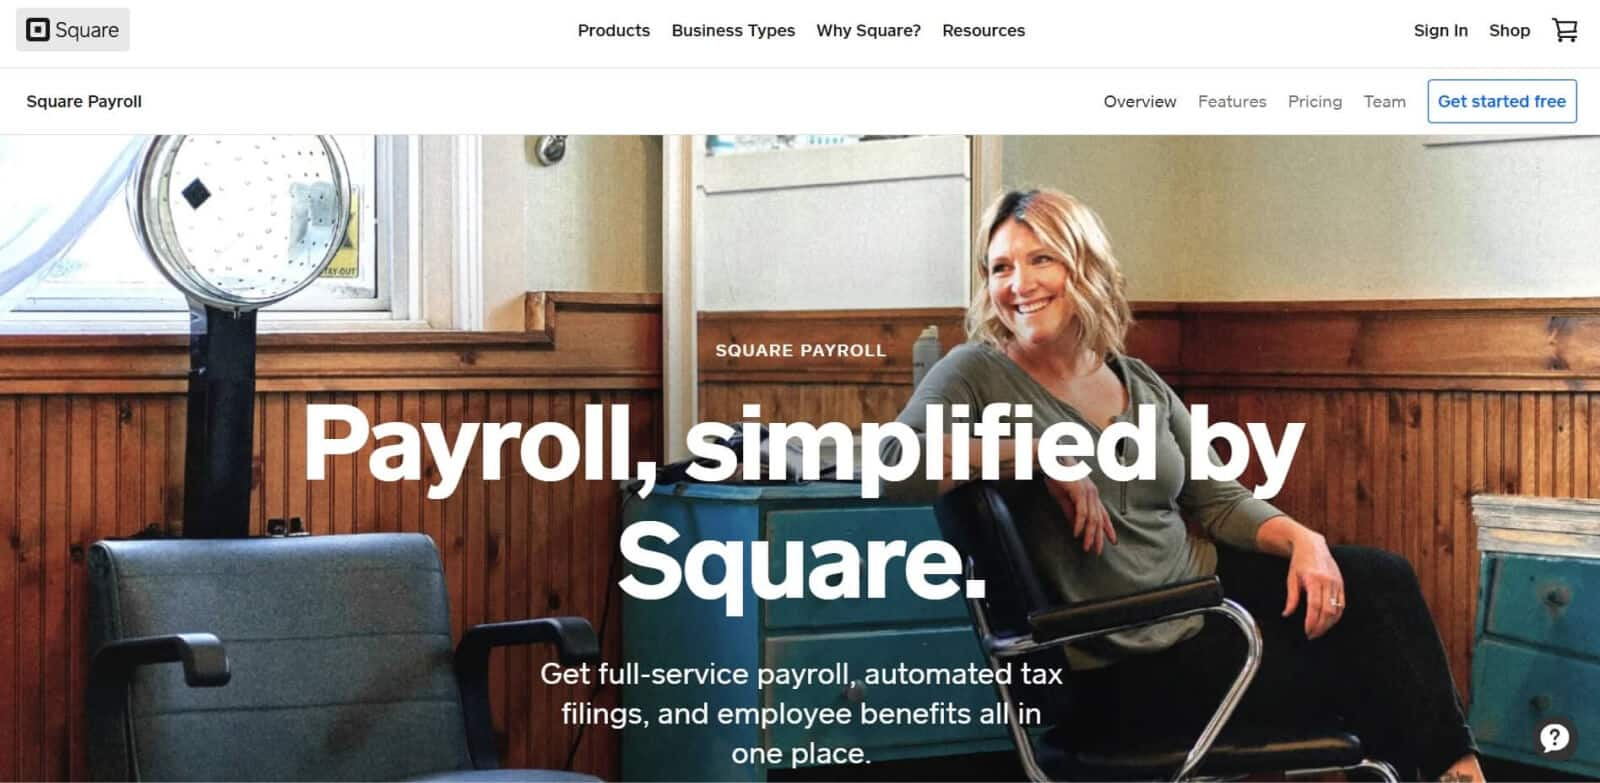 Square Payroll is a payroll management solution offered by Square